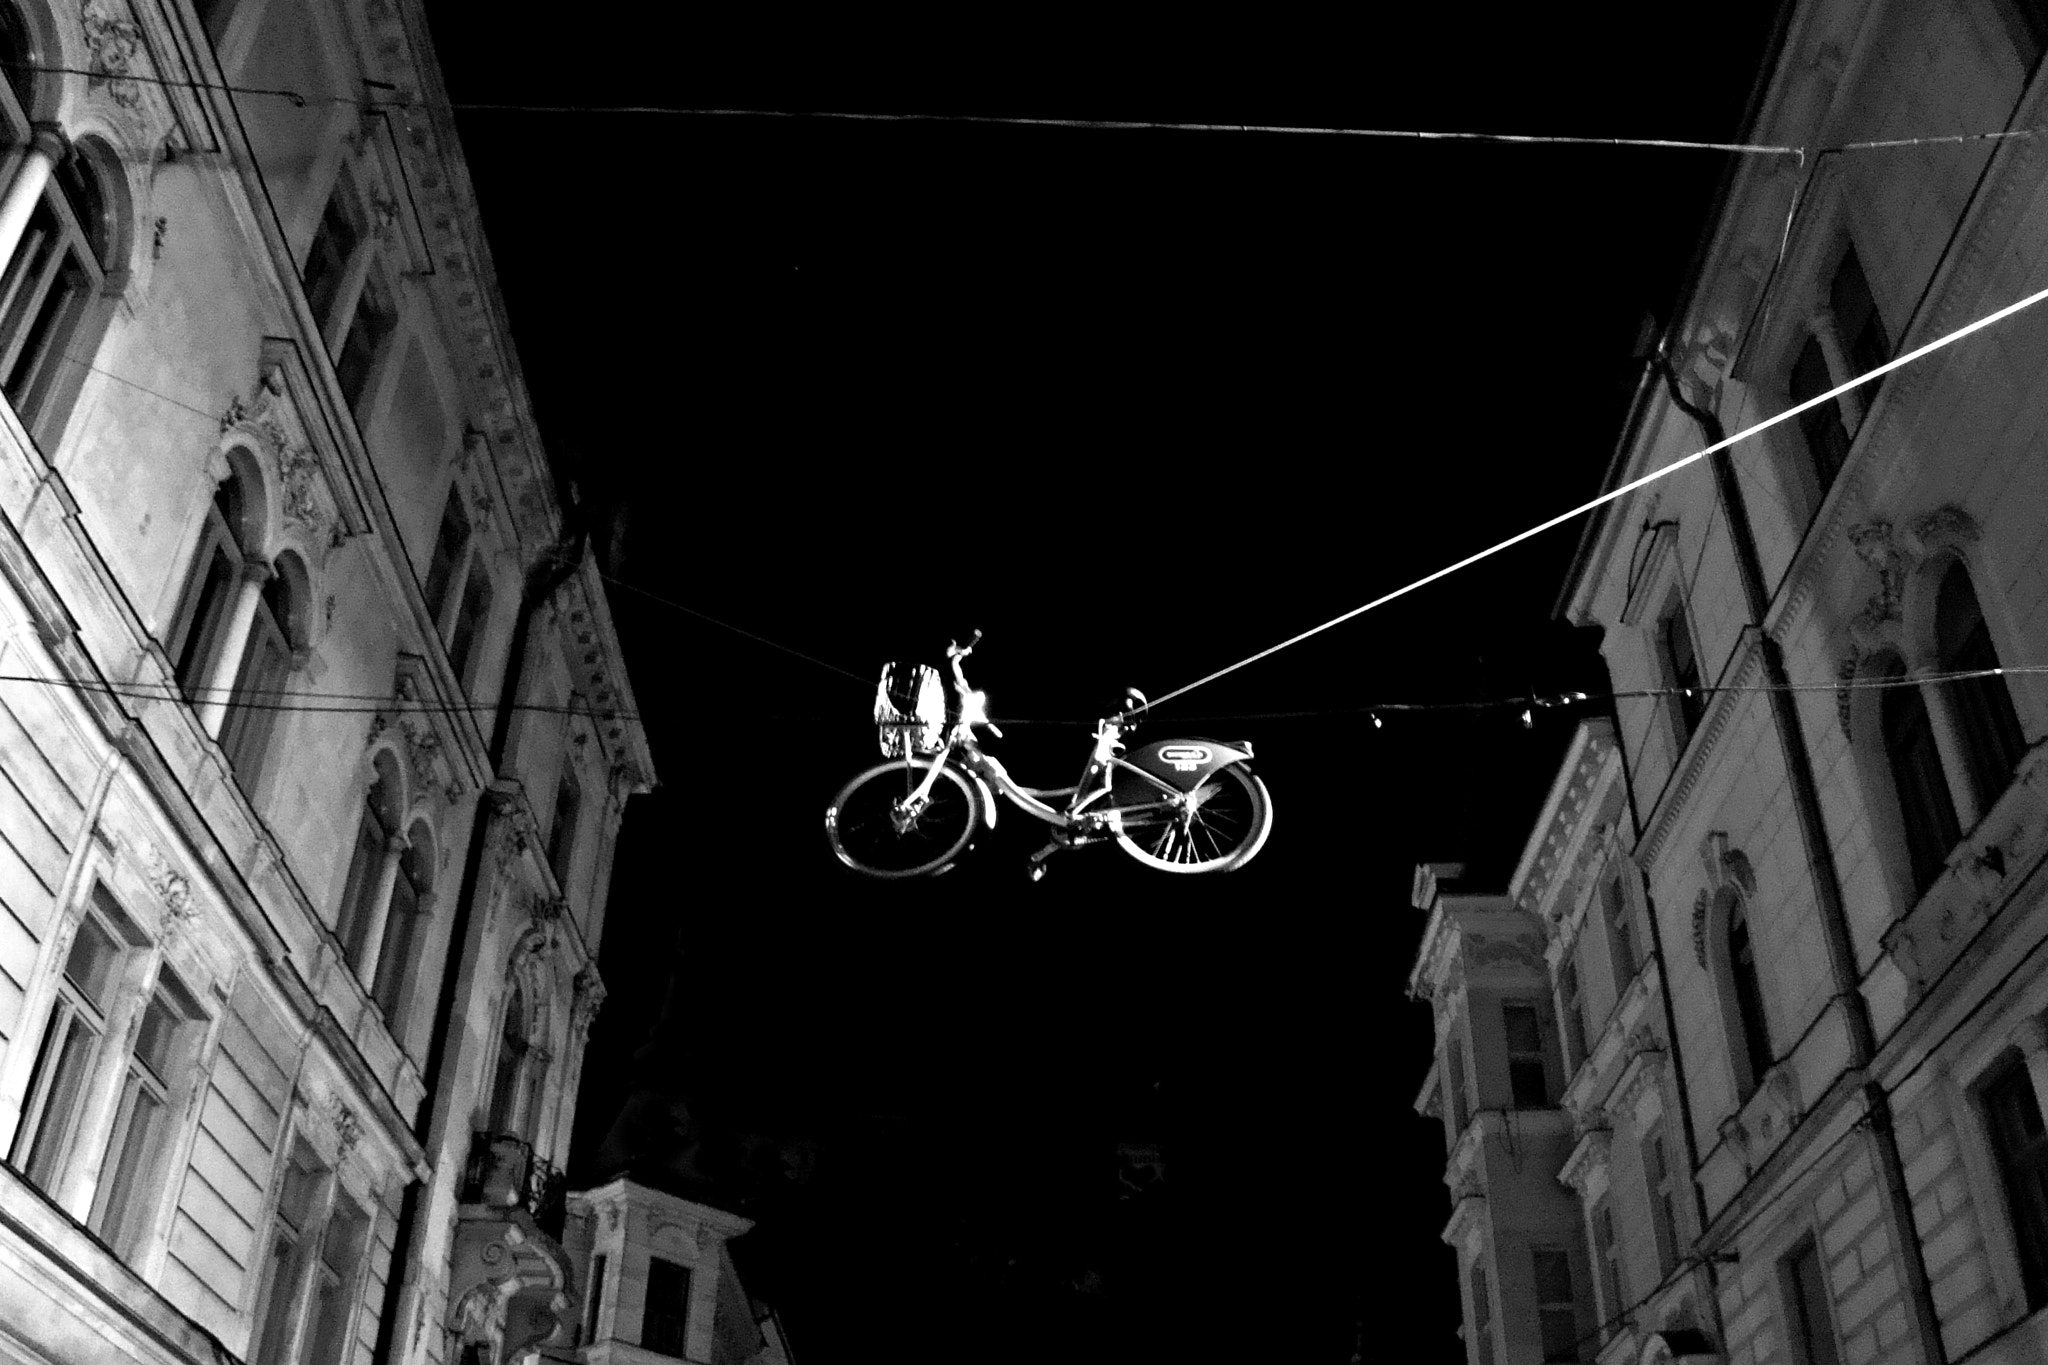 Photograph Bicycle On A Wire by Mojca Savicki on 500px